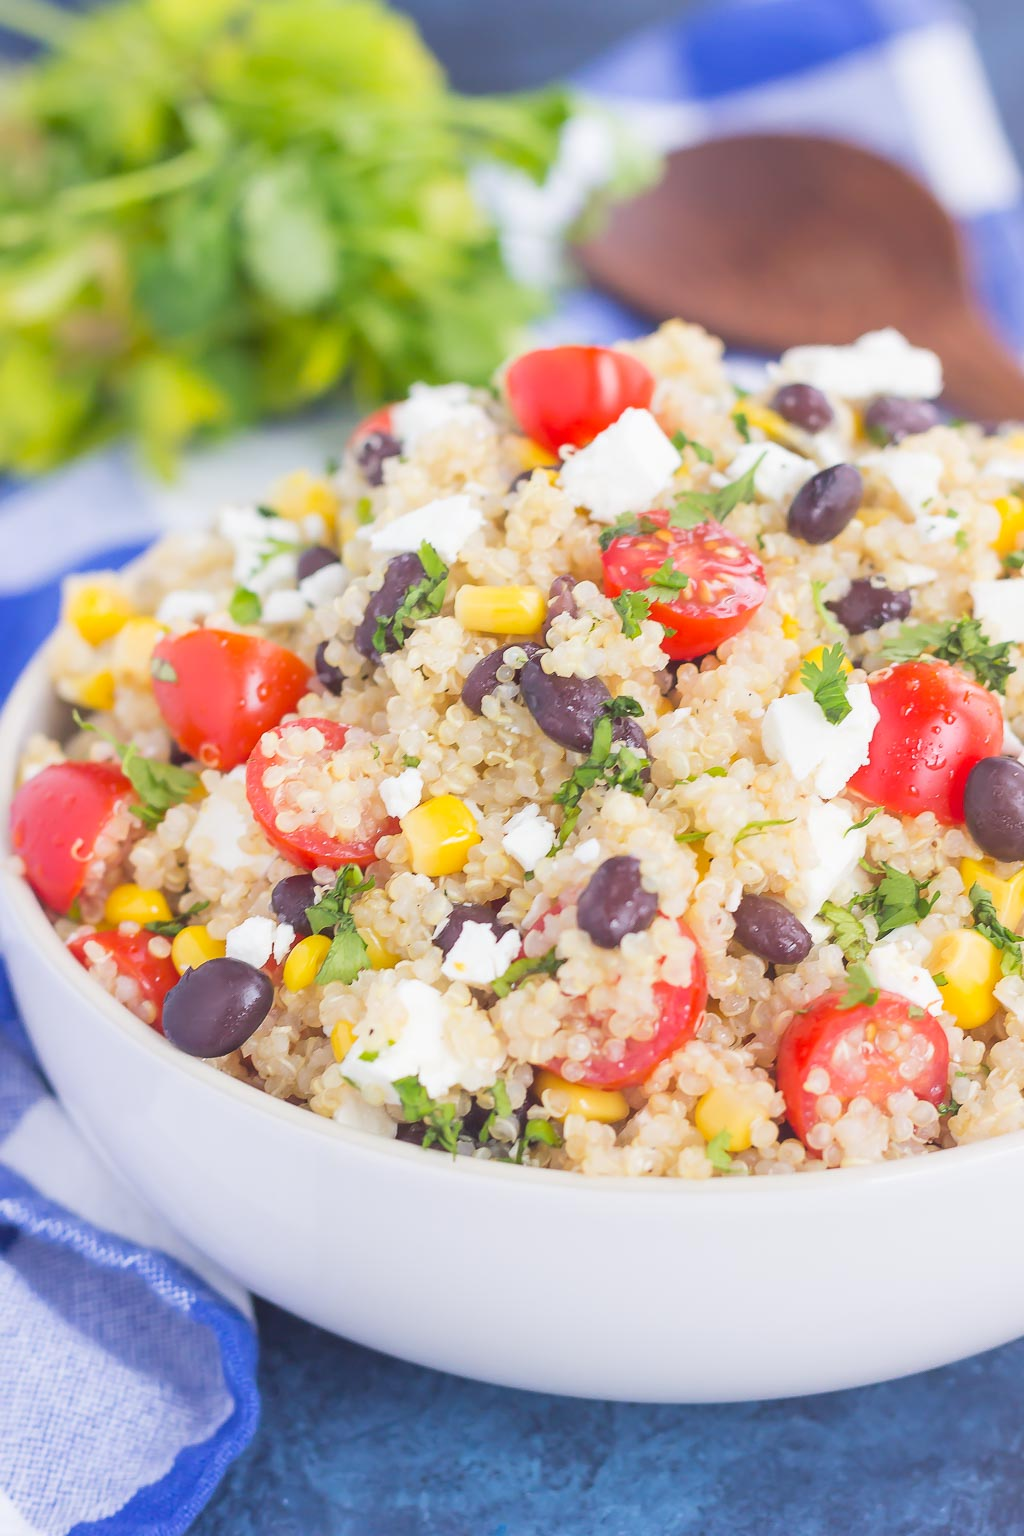 This Corn and Black Bean Quinoa Salad is hearty, on the healthier side, and perfect for a light meal. Quinoa is tossed with black beans, fresh corn, cilantro and tomatoes, and then tossed in a light white balsamic dressing. Loaded with flavor and ready in less than 30 minutes, this simple salad is perfect for lunch or dinner!